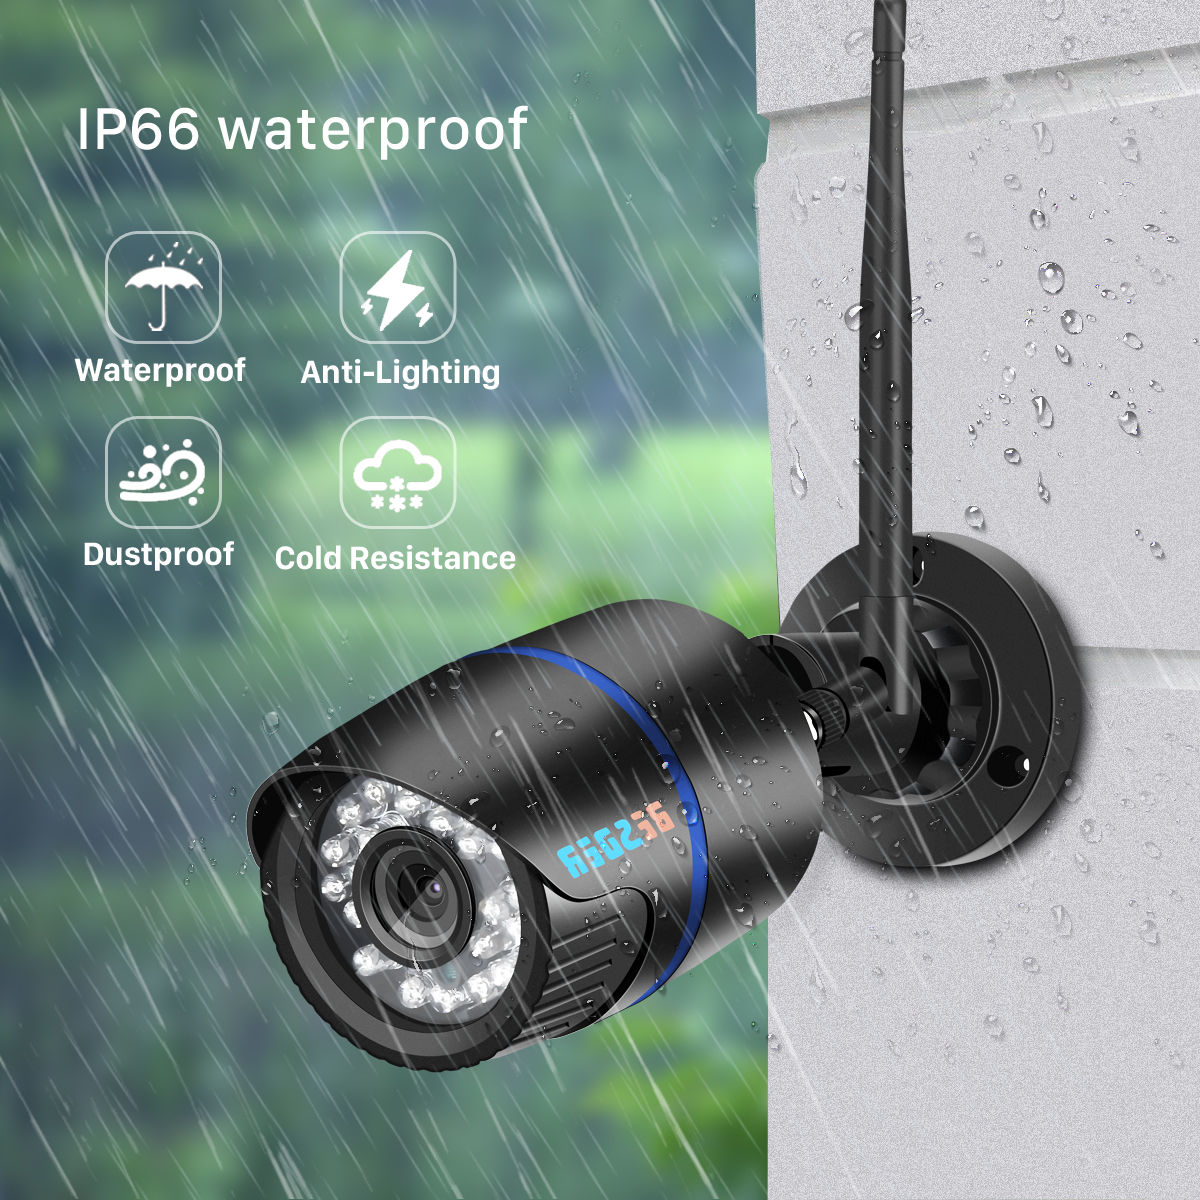 H1d229b93c6074418b22f4fe4ce339f90W BESDER iCsee Audio Security IP Camera 1080P Wireless Wired ONVIF CCTV Surveillance Outdoor Wifi Camera With SD Card Slot Max 64G